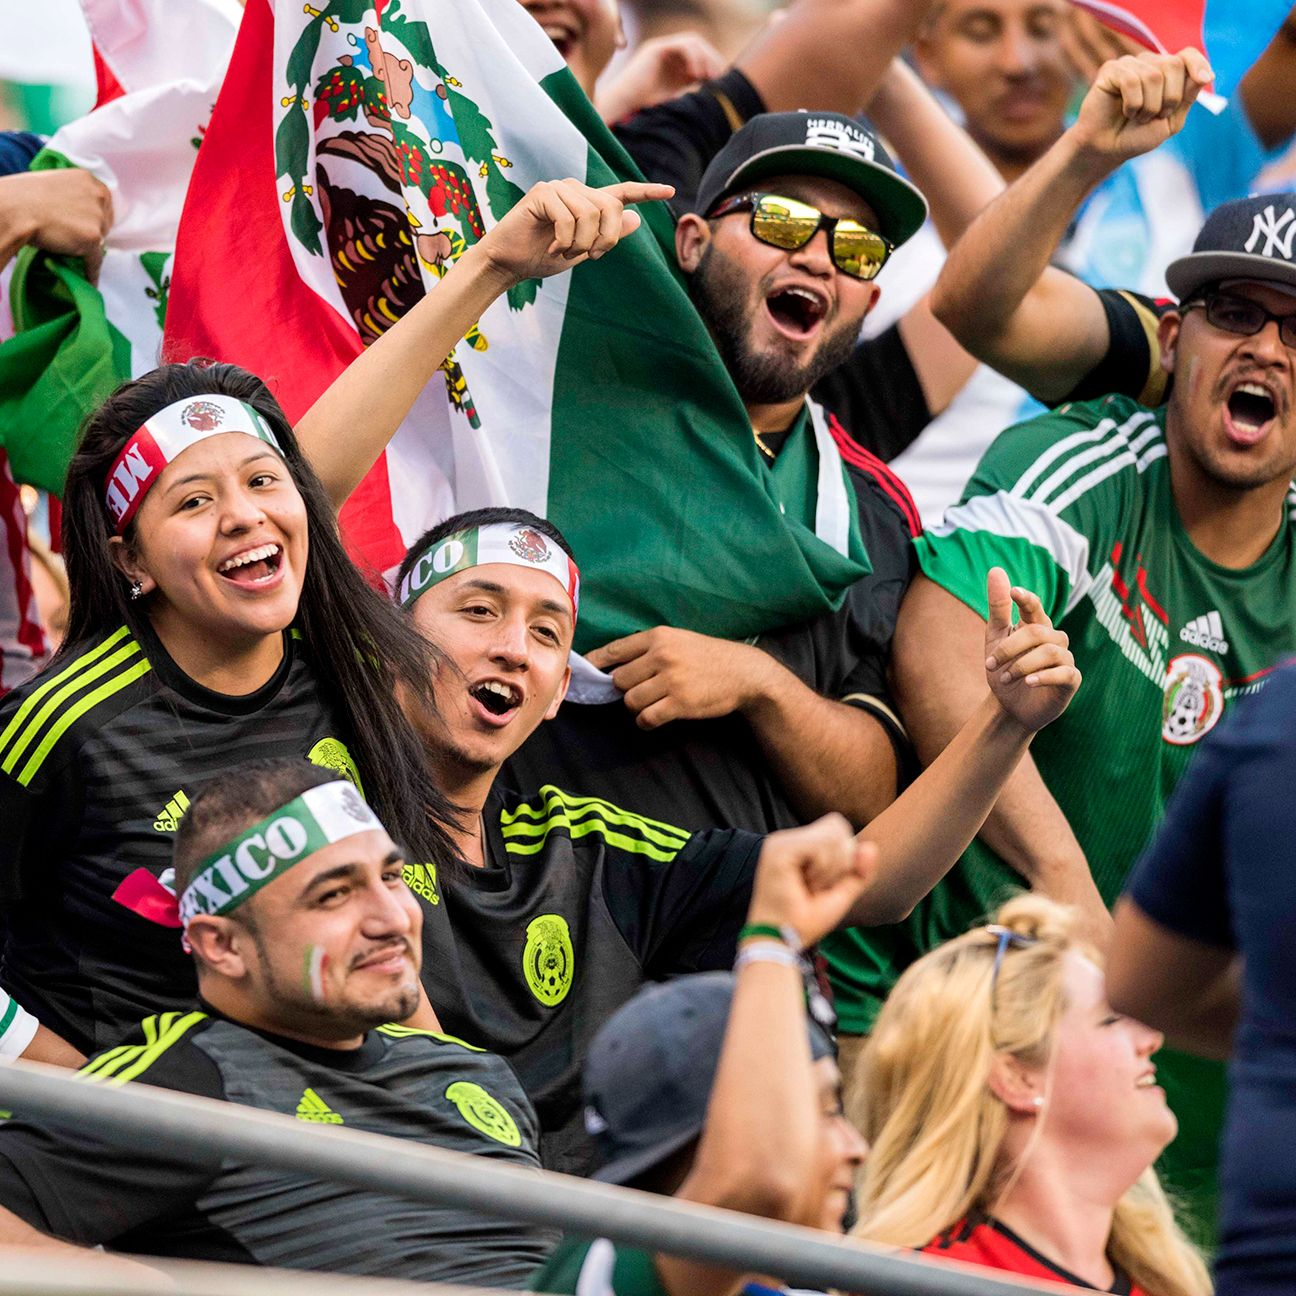 As usual, Mexico fans showed up in great numbers to support their team in Charlotte.